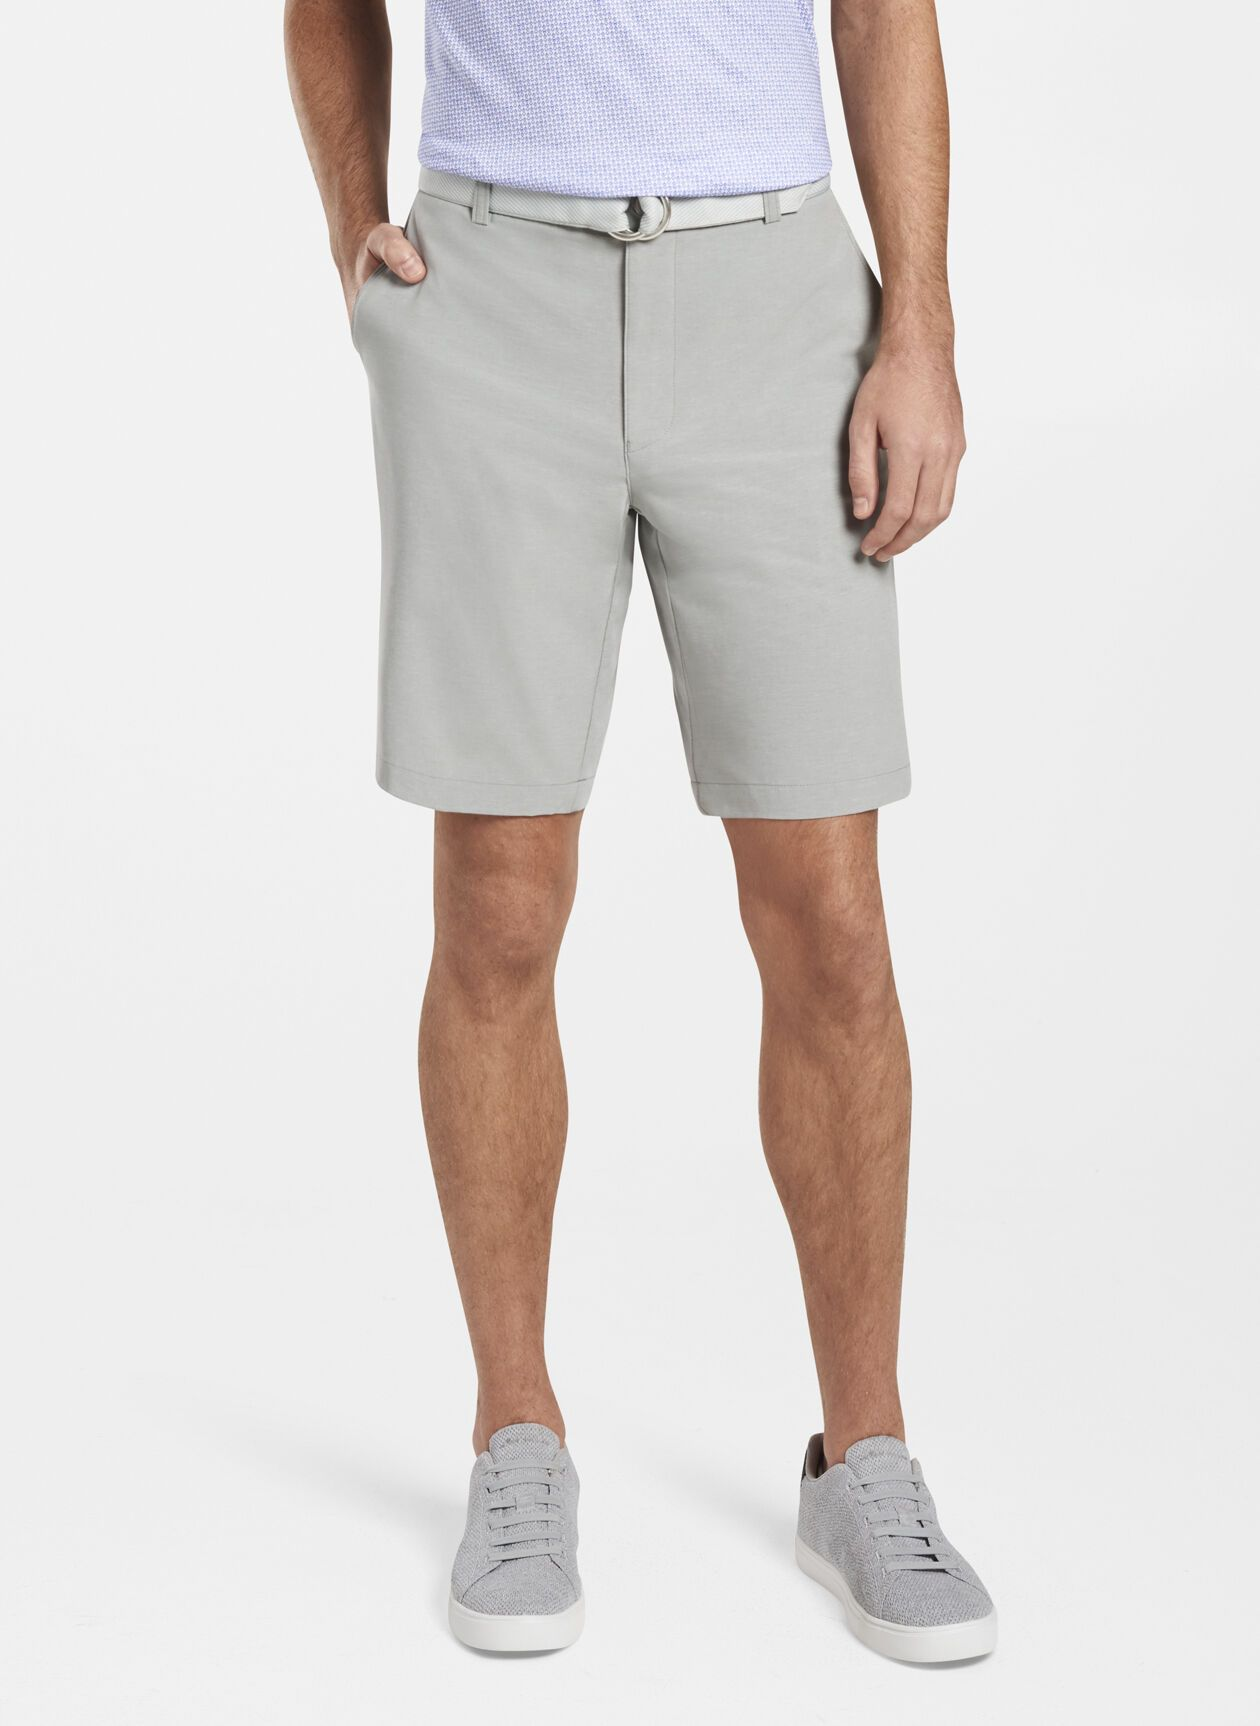 PETER MILLAR Men's Shorts Peter Millar Shackleford Performance Hybrid Short || David's Clothing